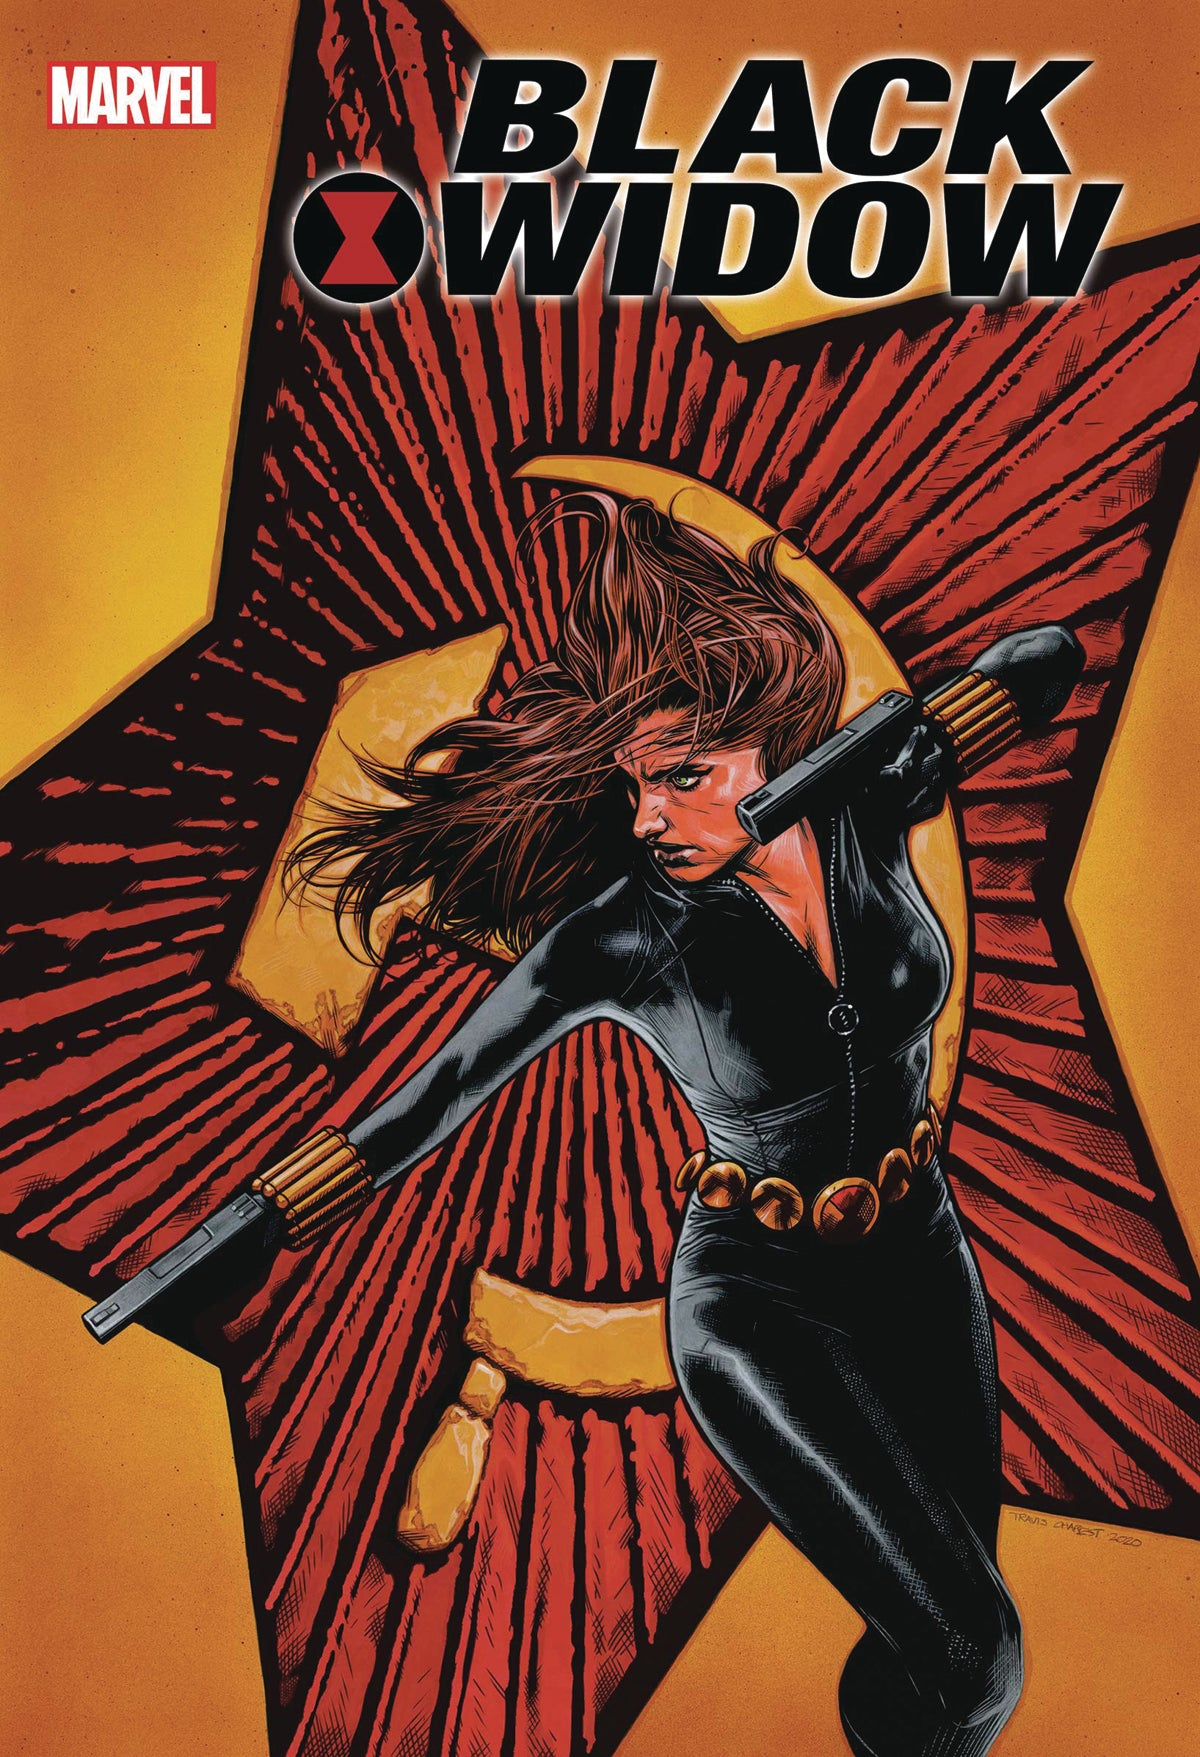 BLACK WIDOW #1 CHAREST VAR | Game Master's Emporium (The New GME)